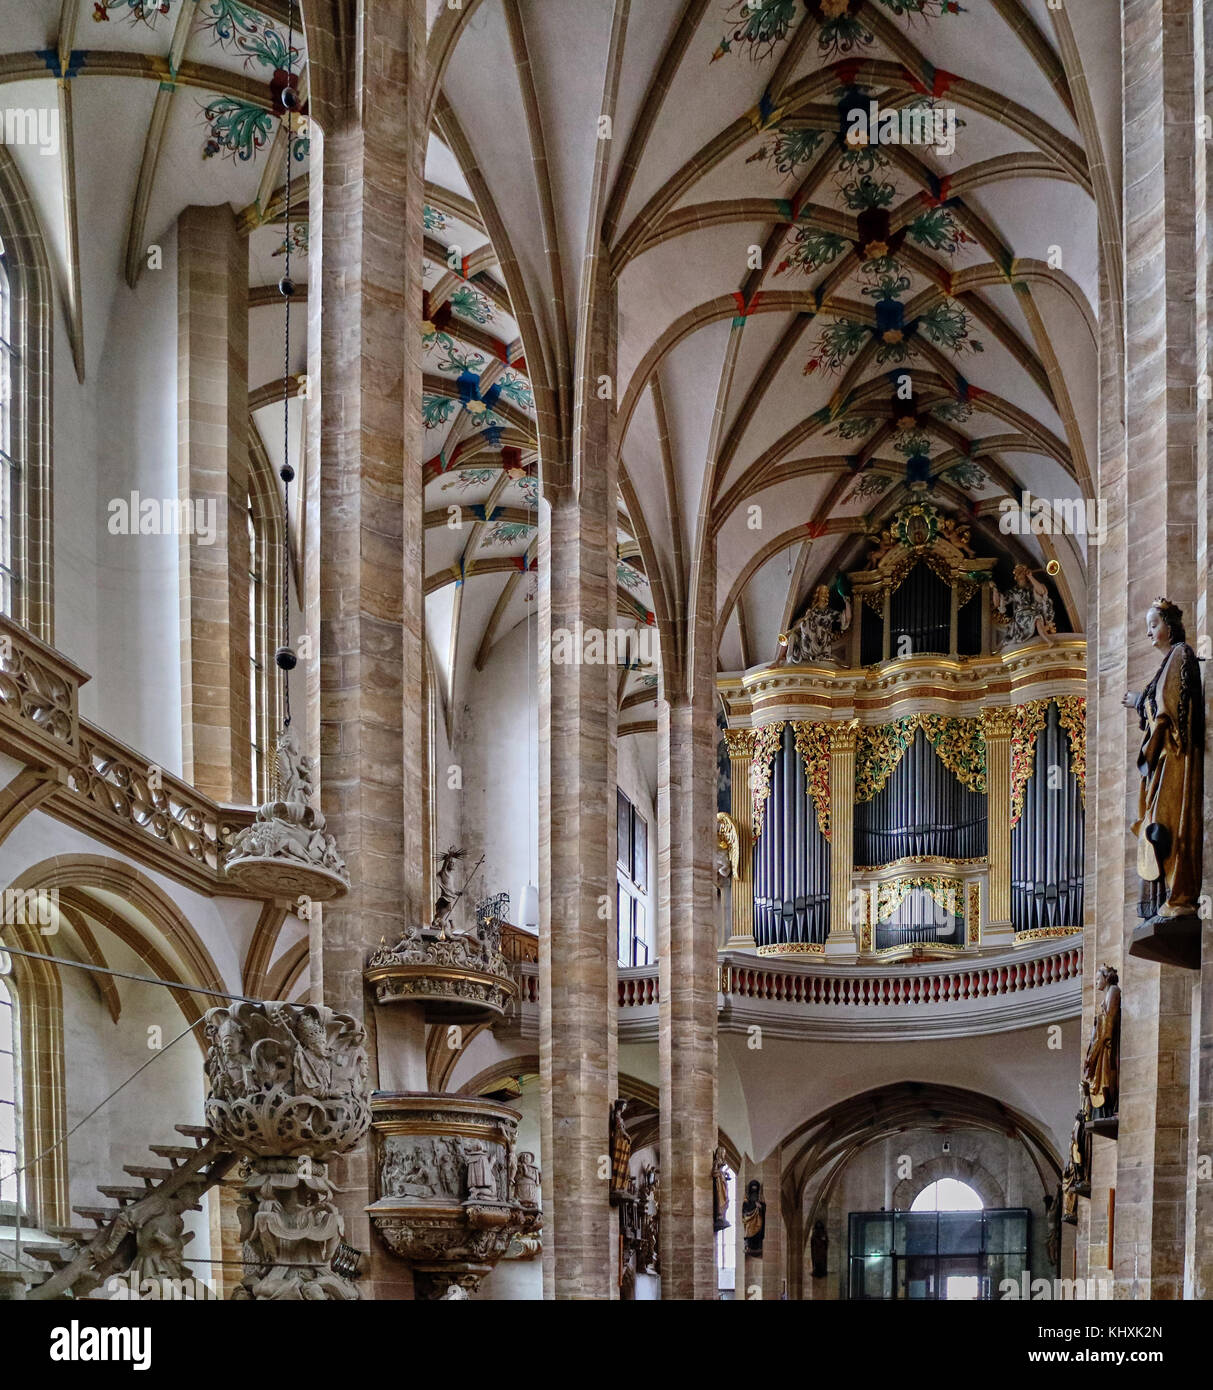 Europe, Germany, Saxony, Freiberg, the old town, the cathedral St-Mary of style Flamboyant Gothic was set up between - Stock Image